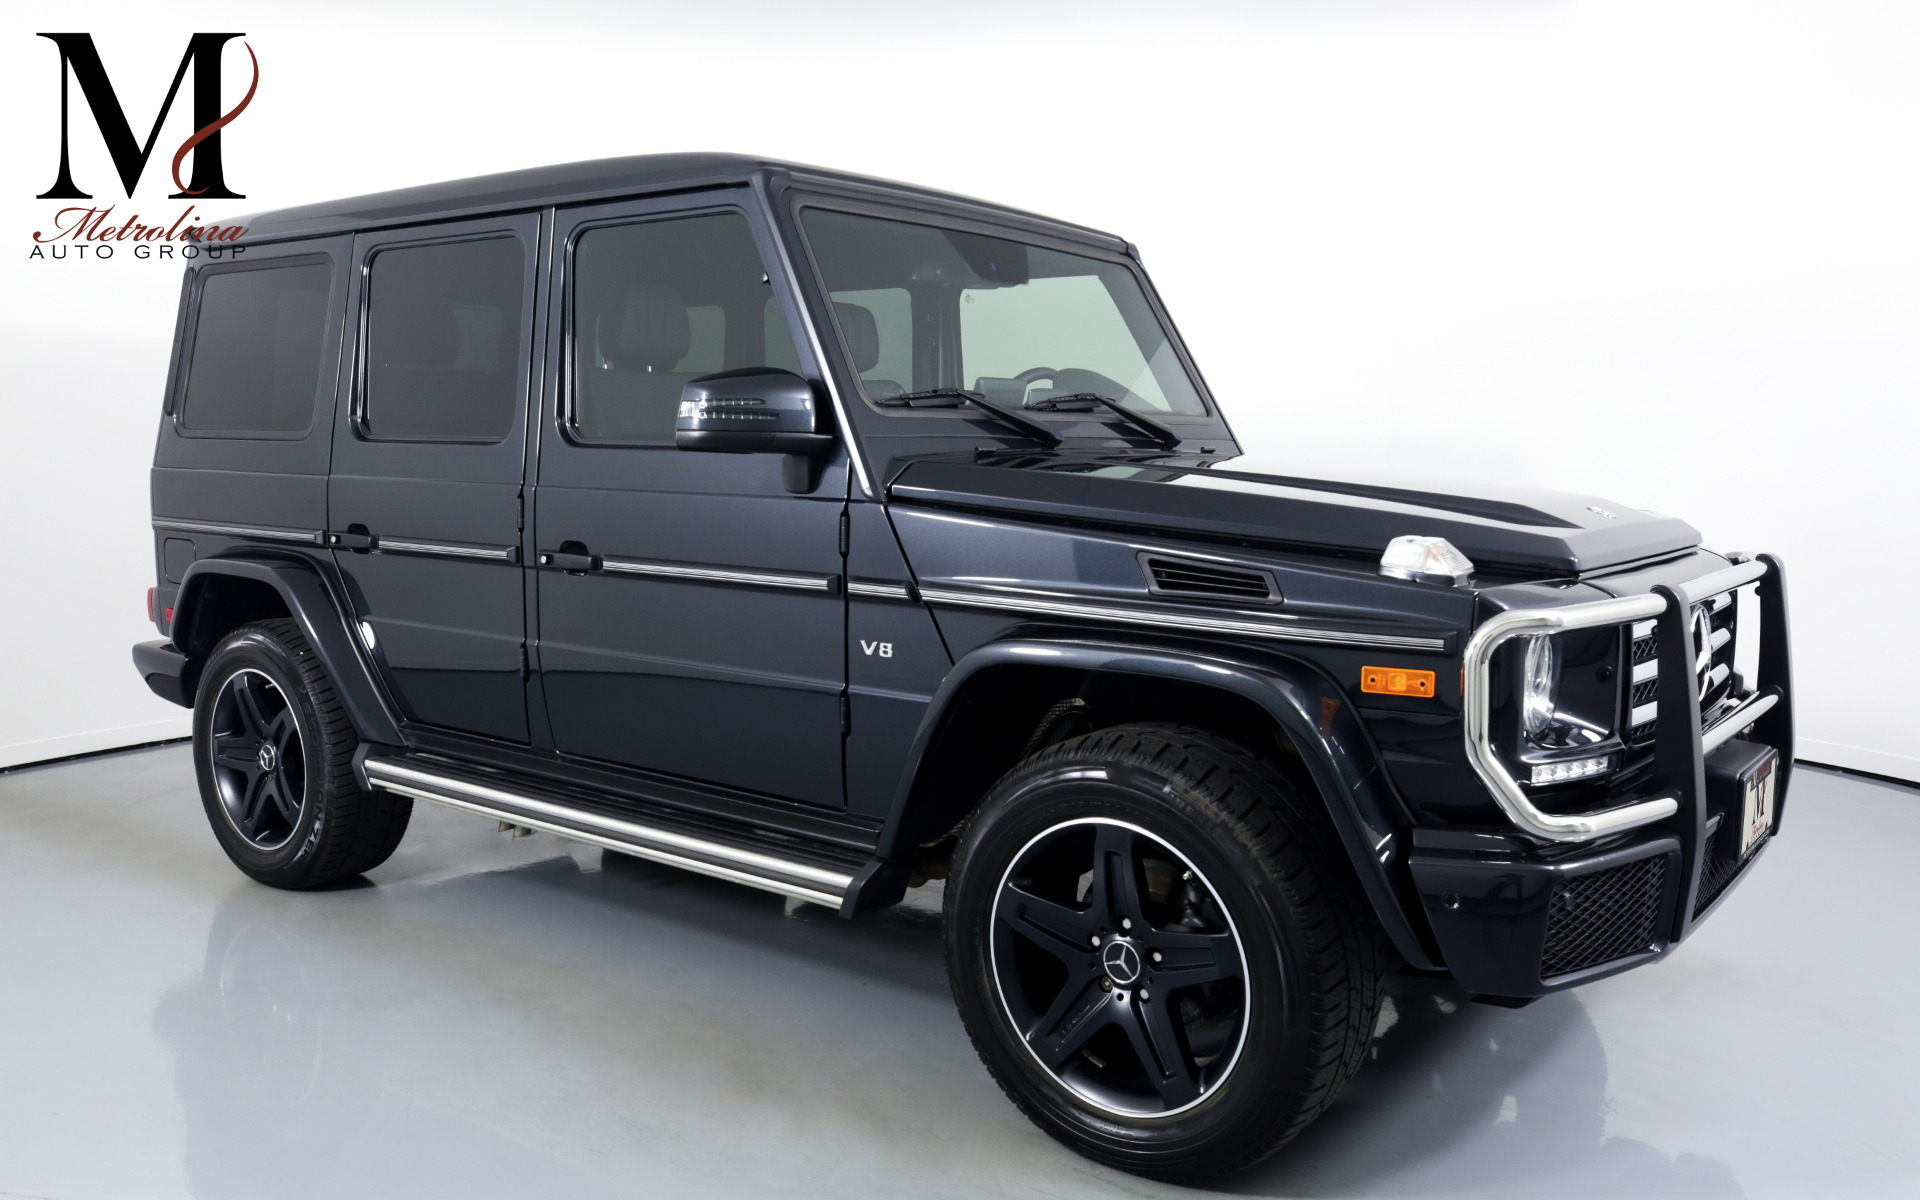 Used 2017 Mercedes-Benz G-Class G 550 for sale $78,456 at Metrolina Auto Group in Charlotte NC 28217 - 1